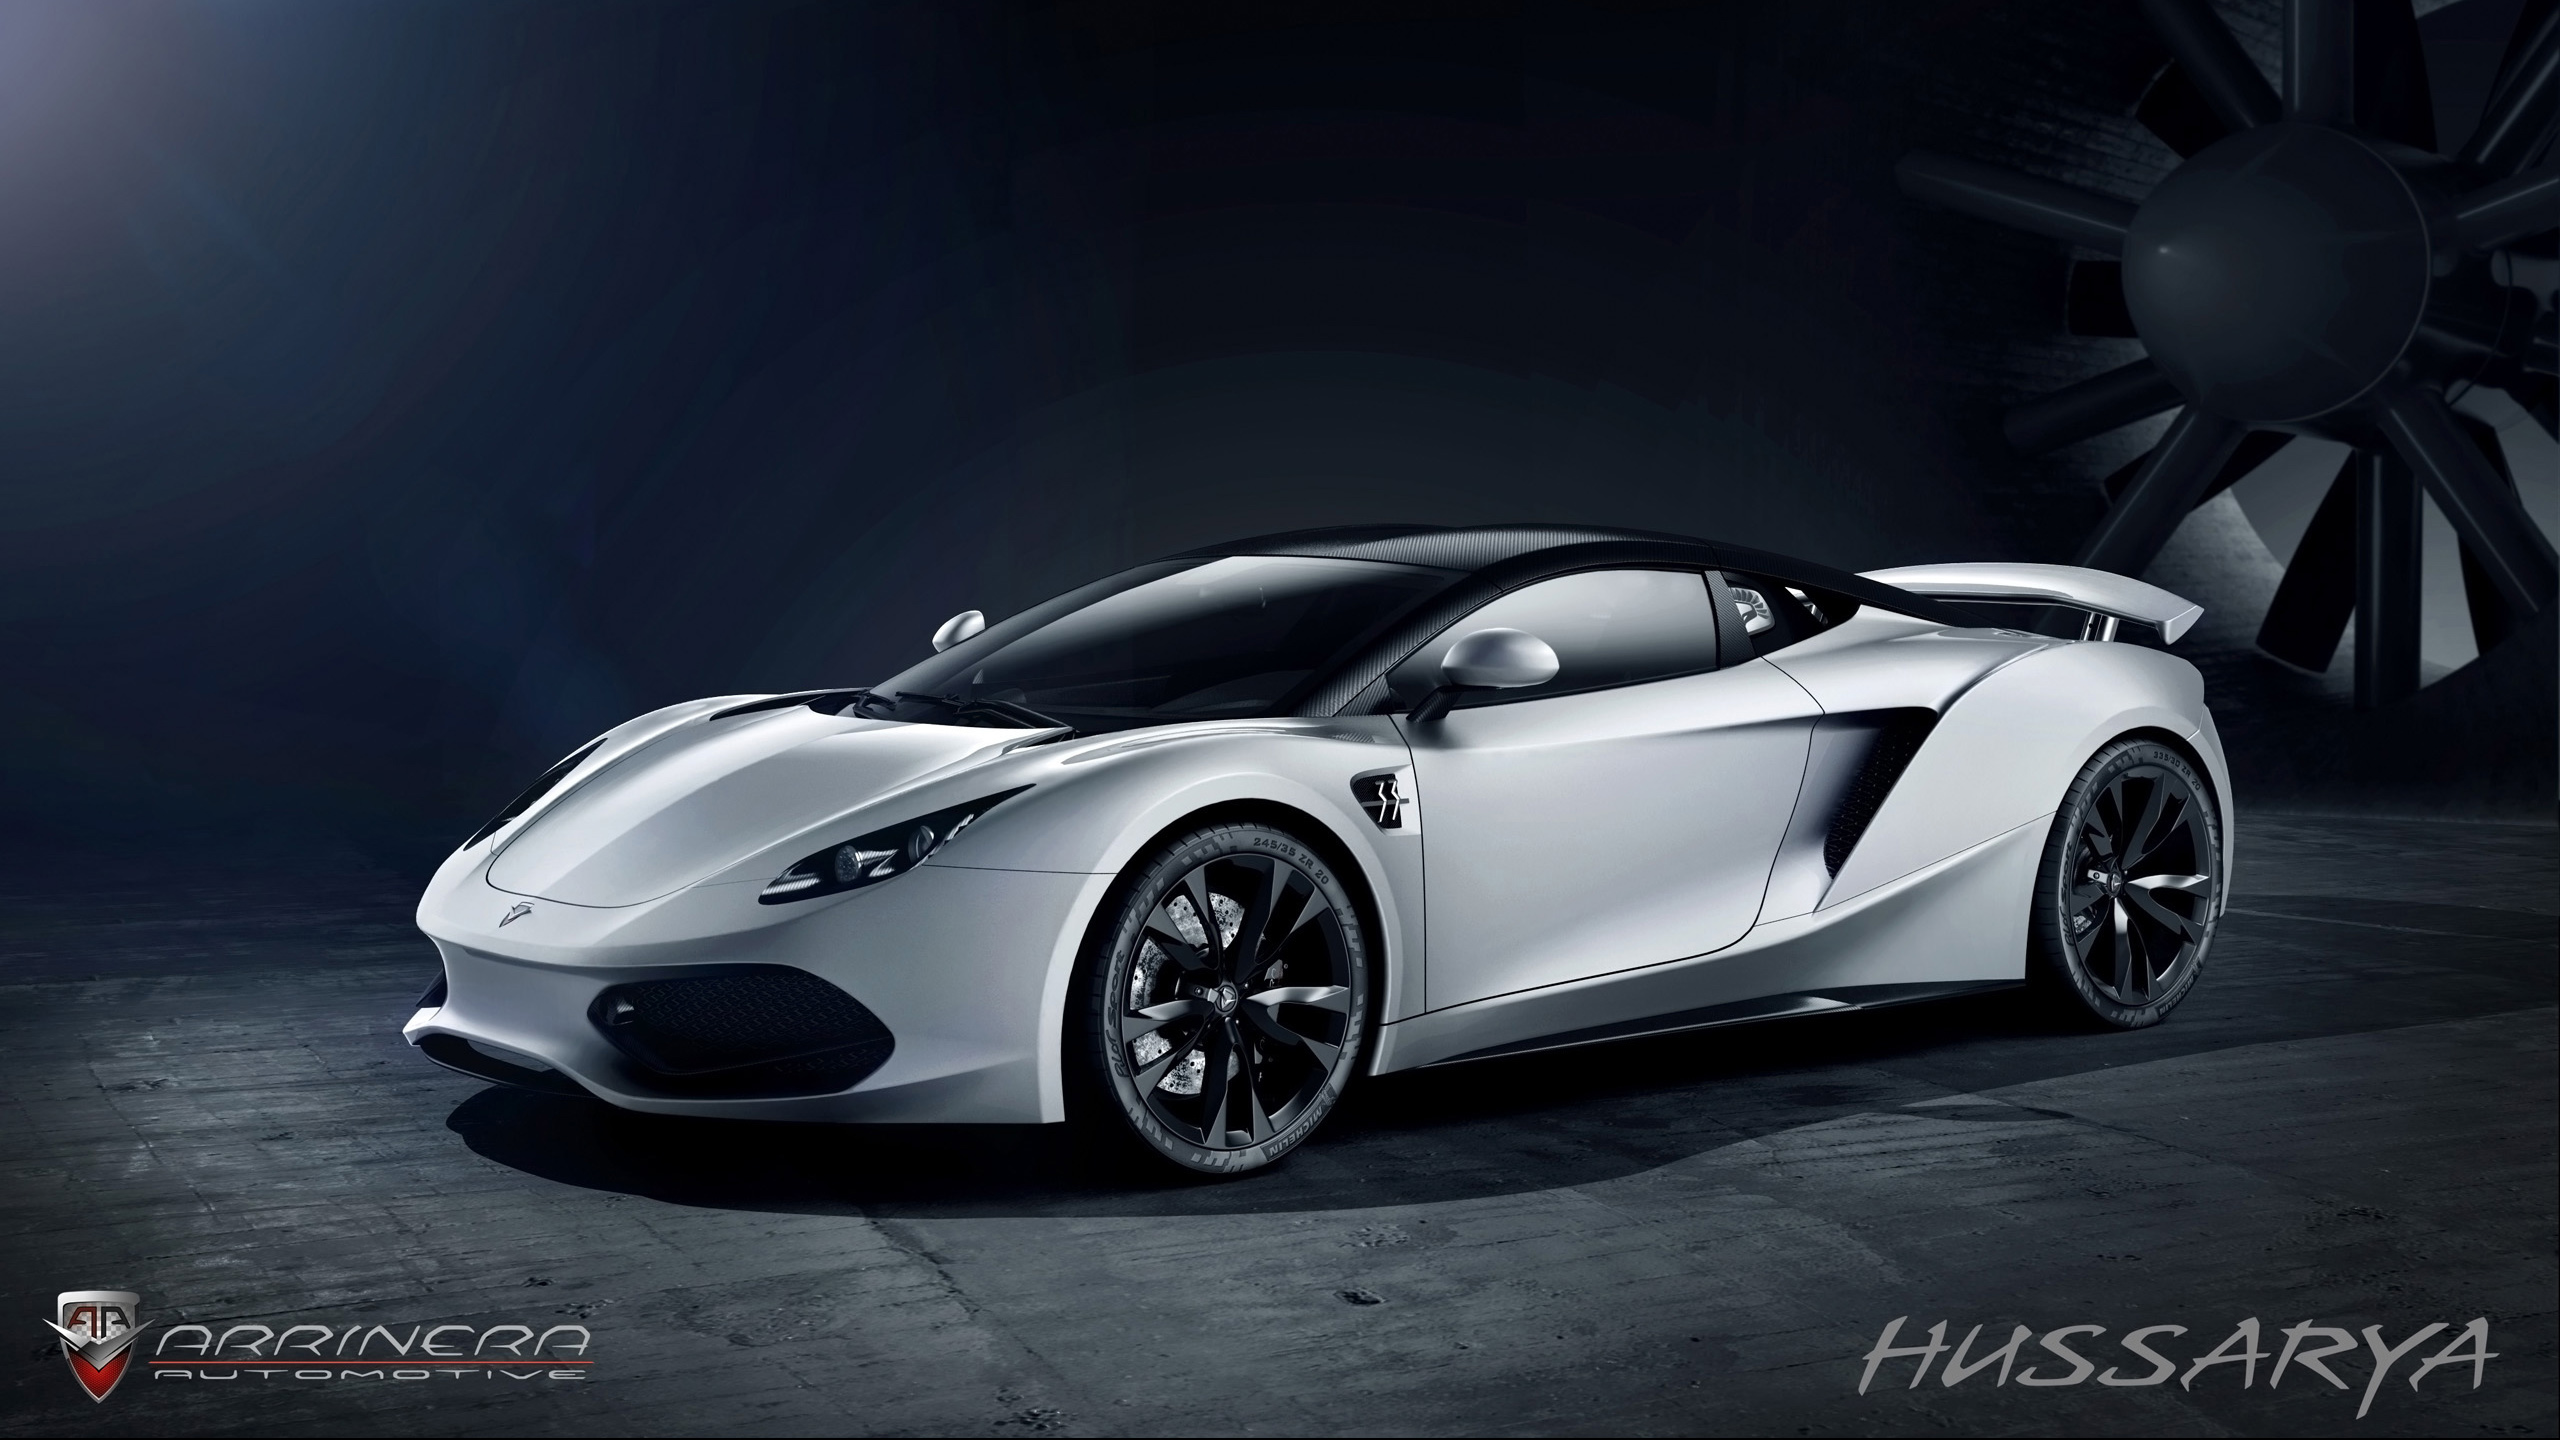 Arrinera Hussarya 2014 Wallpaper  HD Car Wallpapers